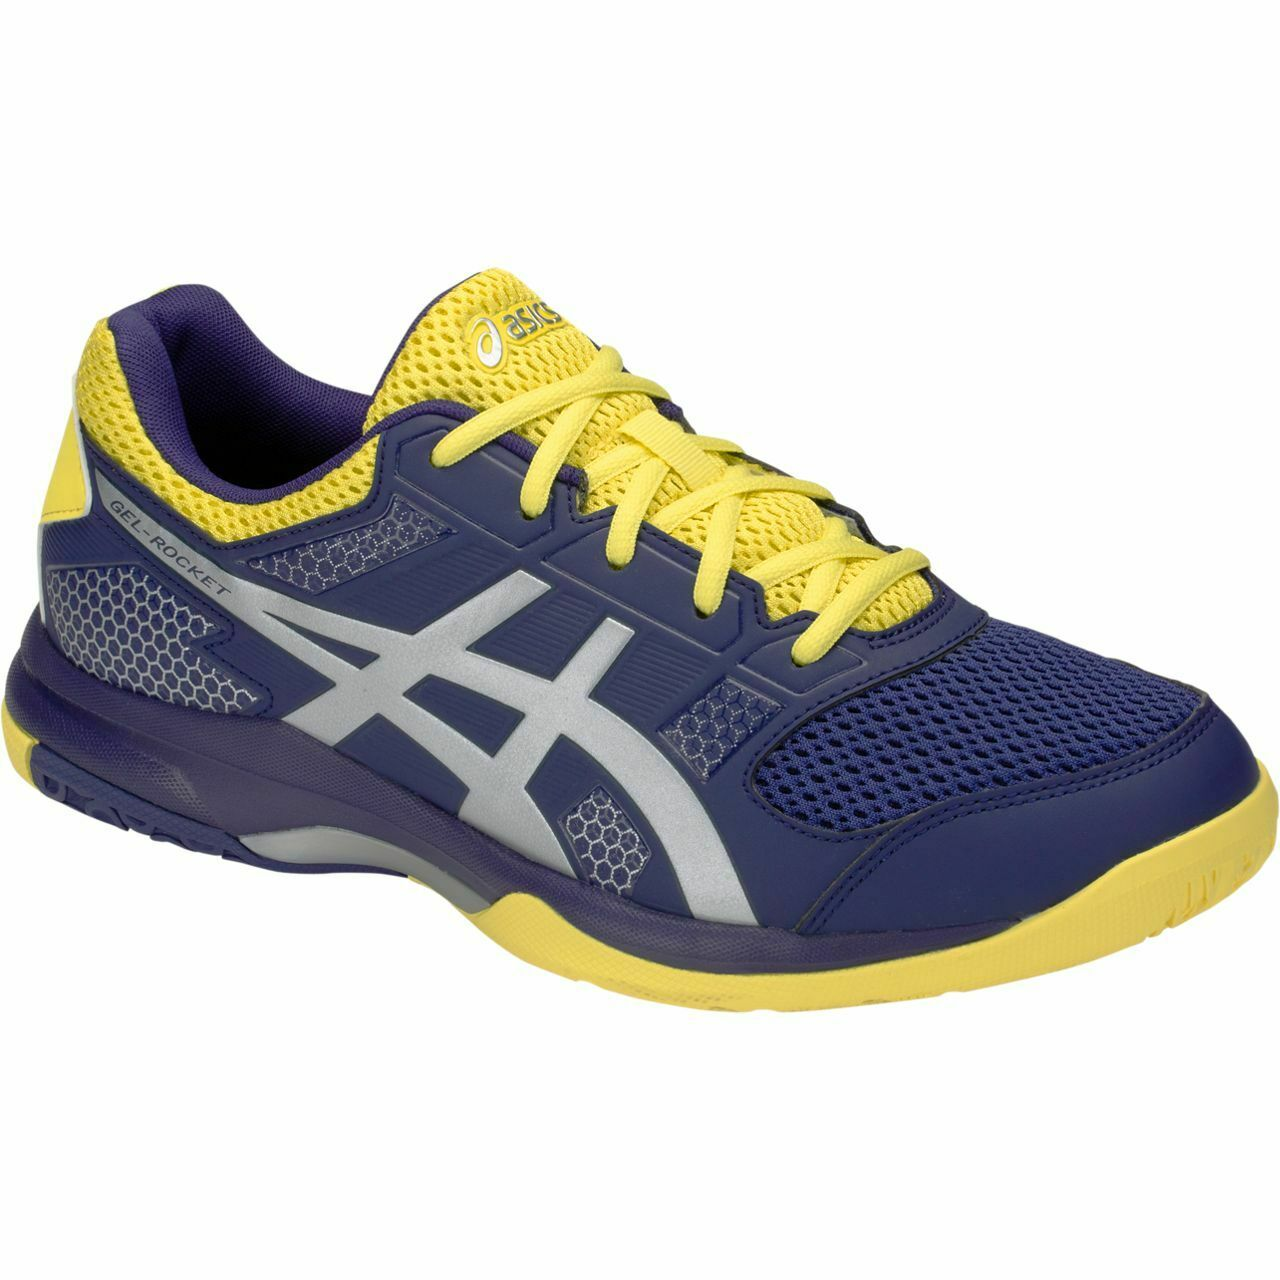 LATEST RELEASE Asics Gel Rocket 8 Mens Indoor zapatos (D) (426)